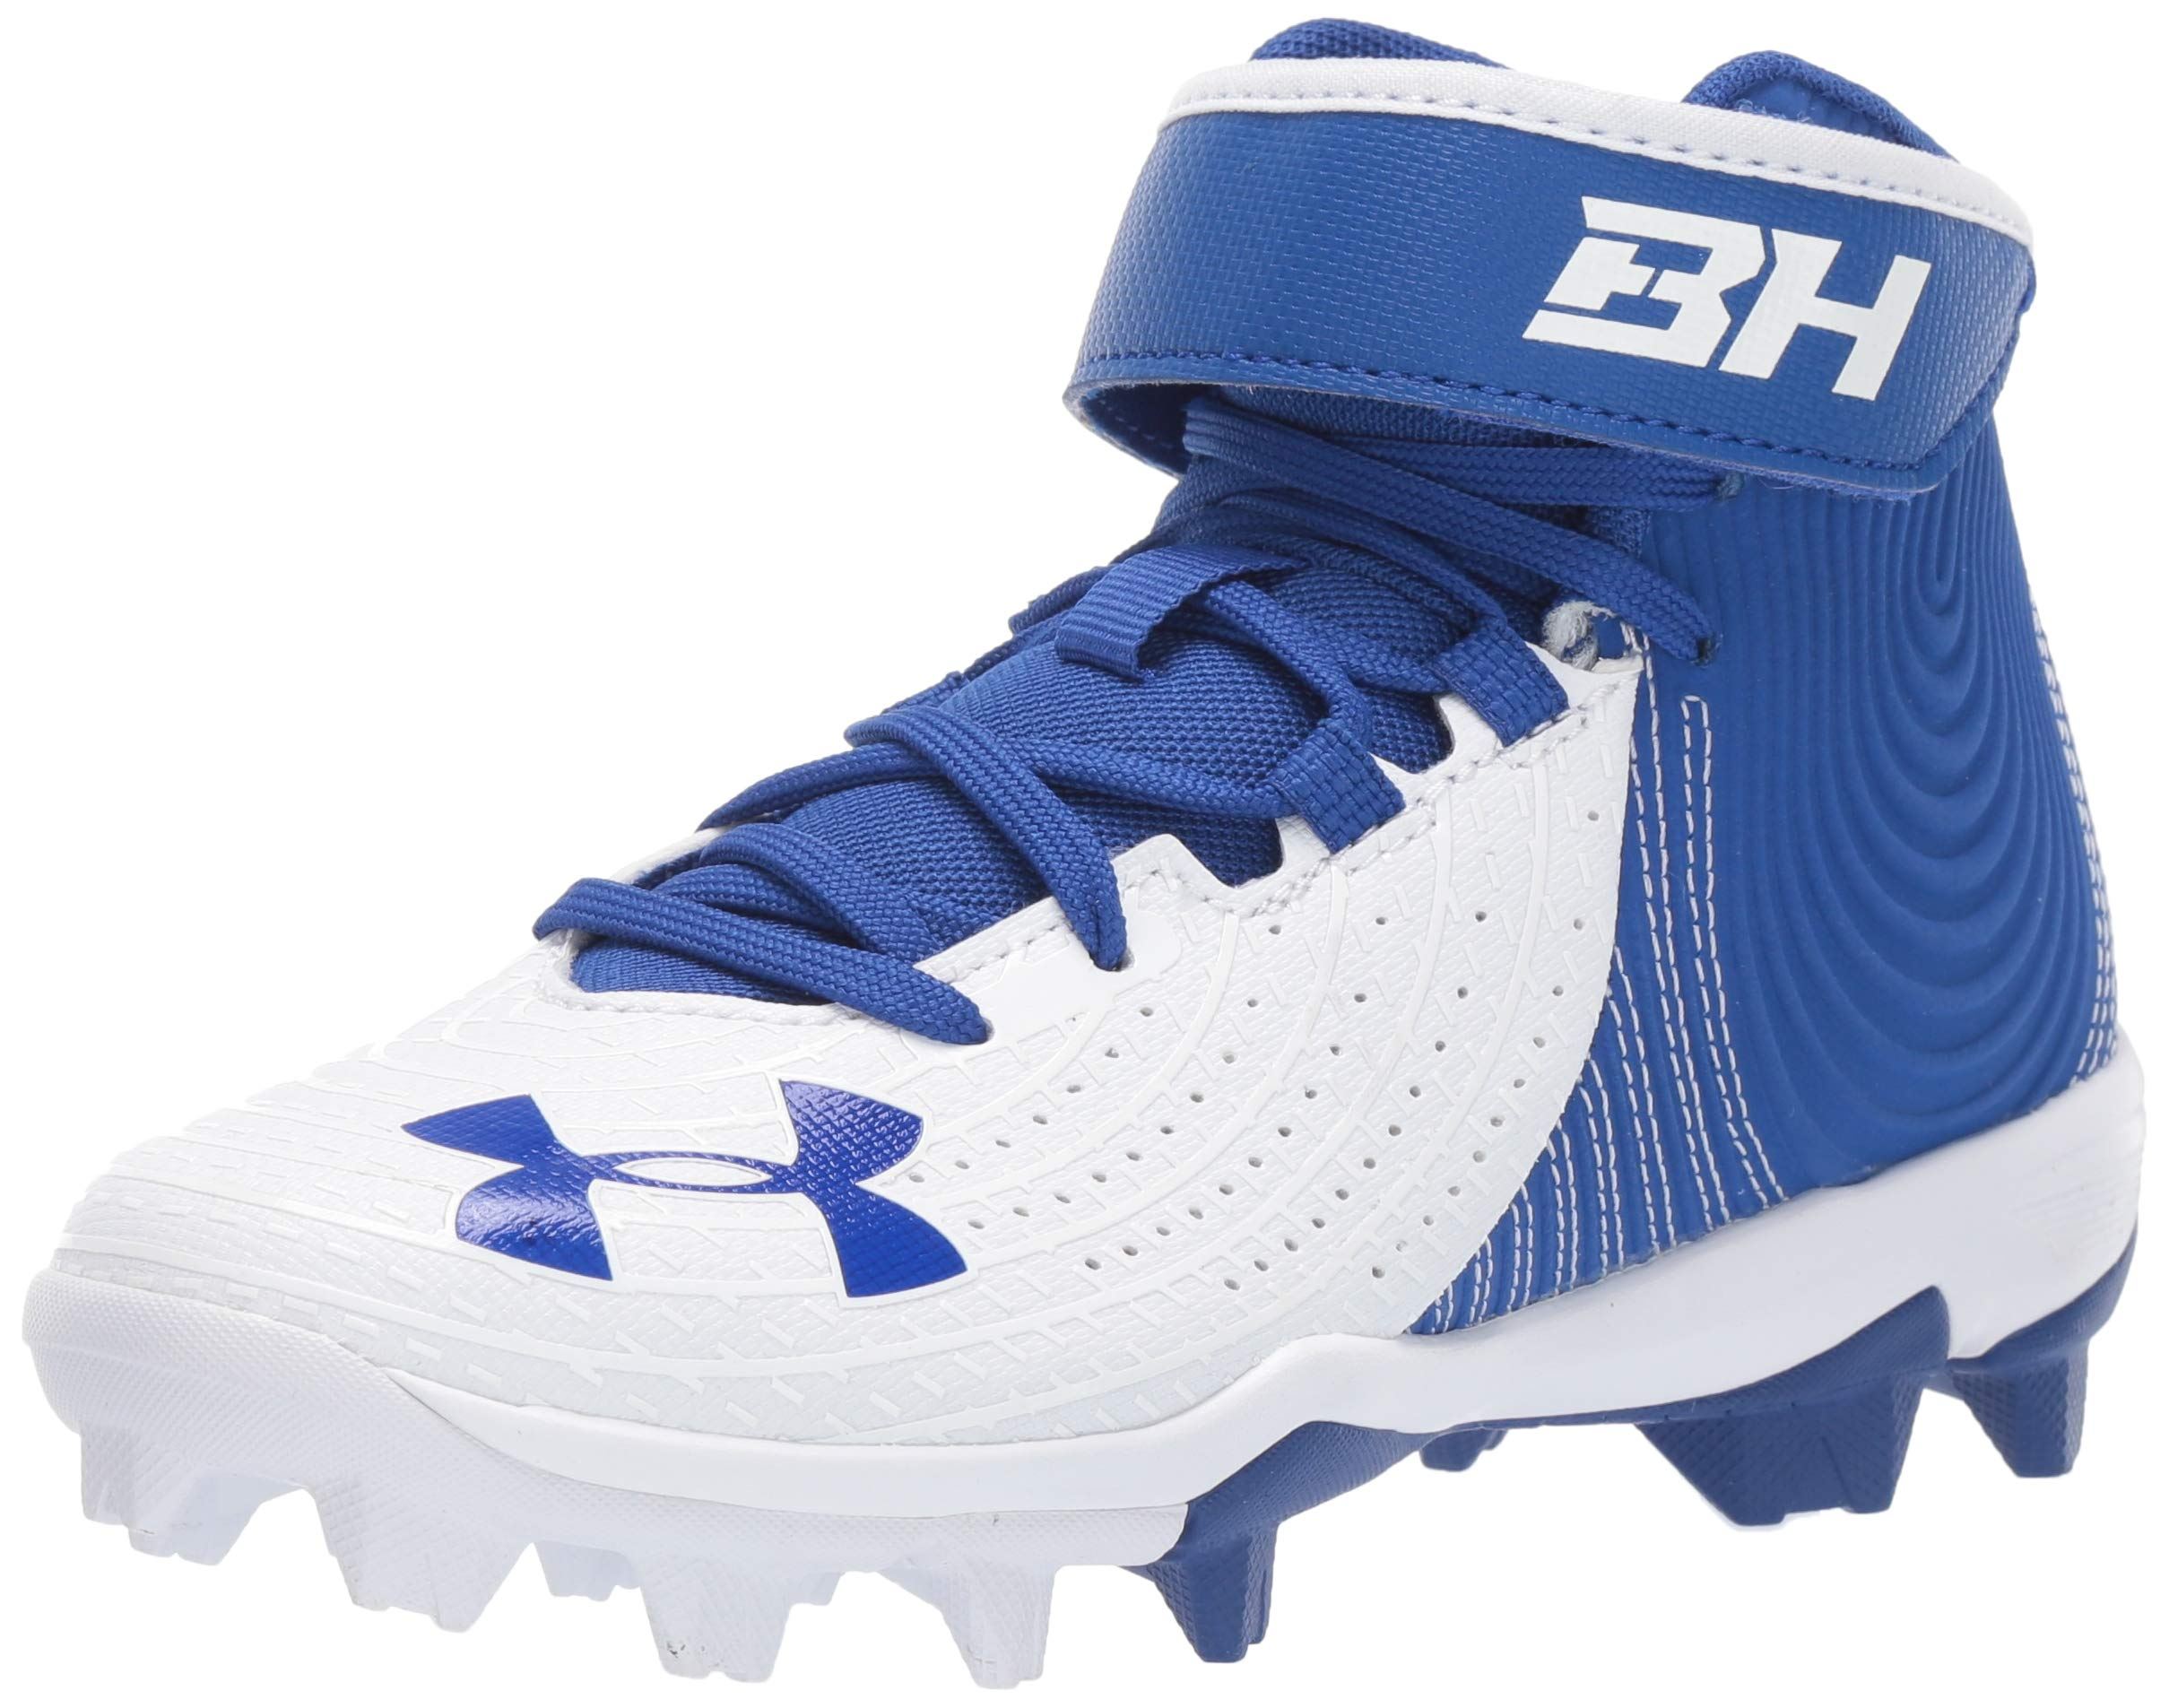 Under Armour Boys' Harper 4 Mid RM Jr. Baseball Shoe, Royal (400)/White, 3.5 by Under Armour